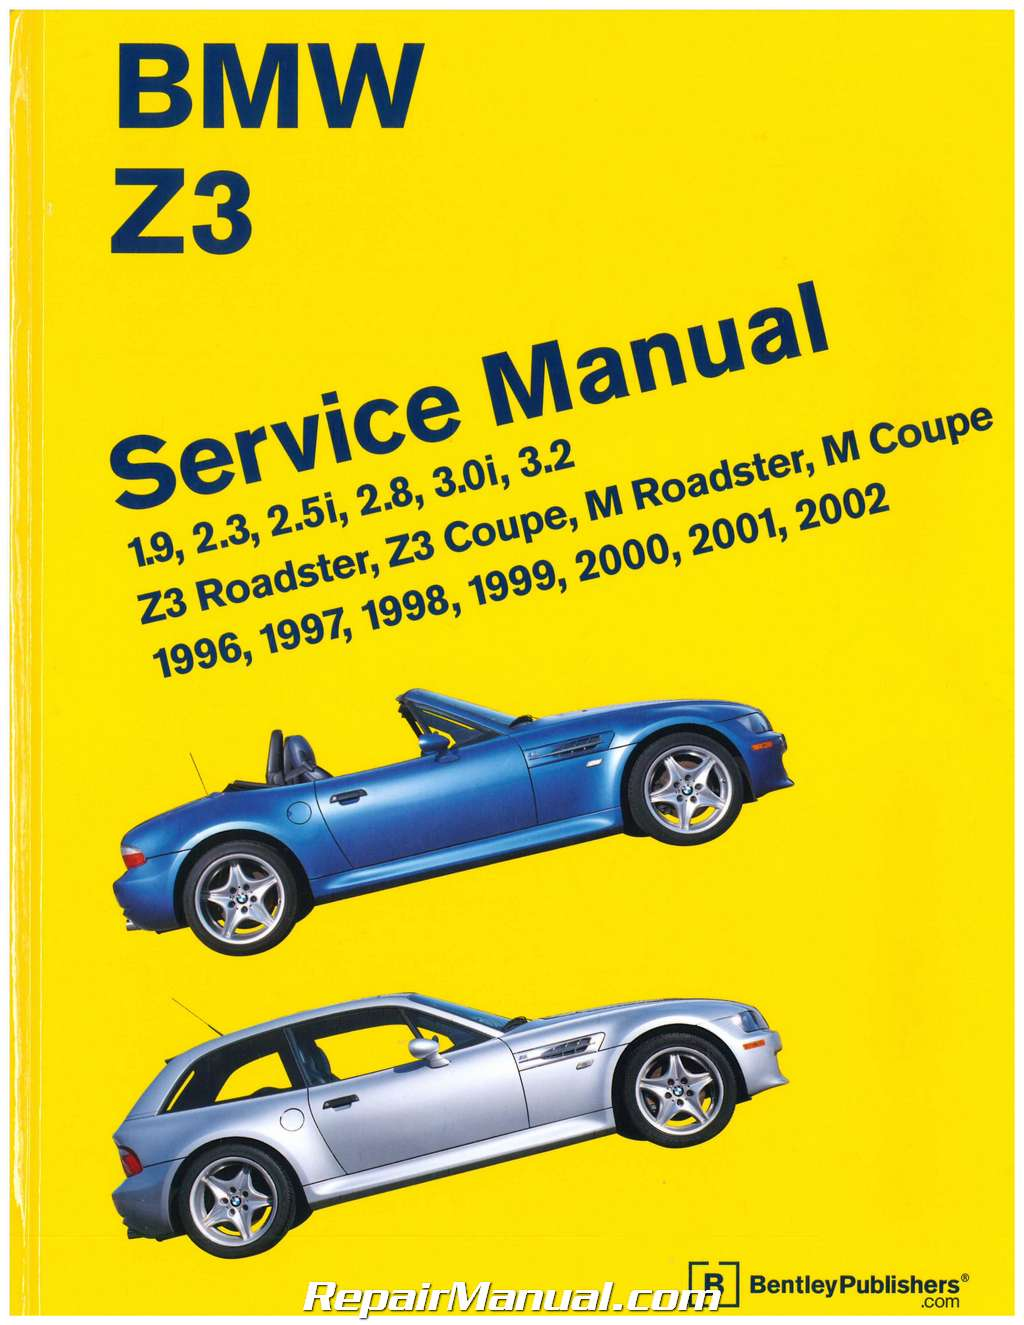 Bmw Z3 Roadster Printed Service Manual 1996 2002